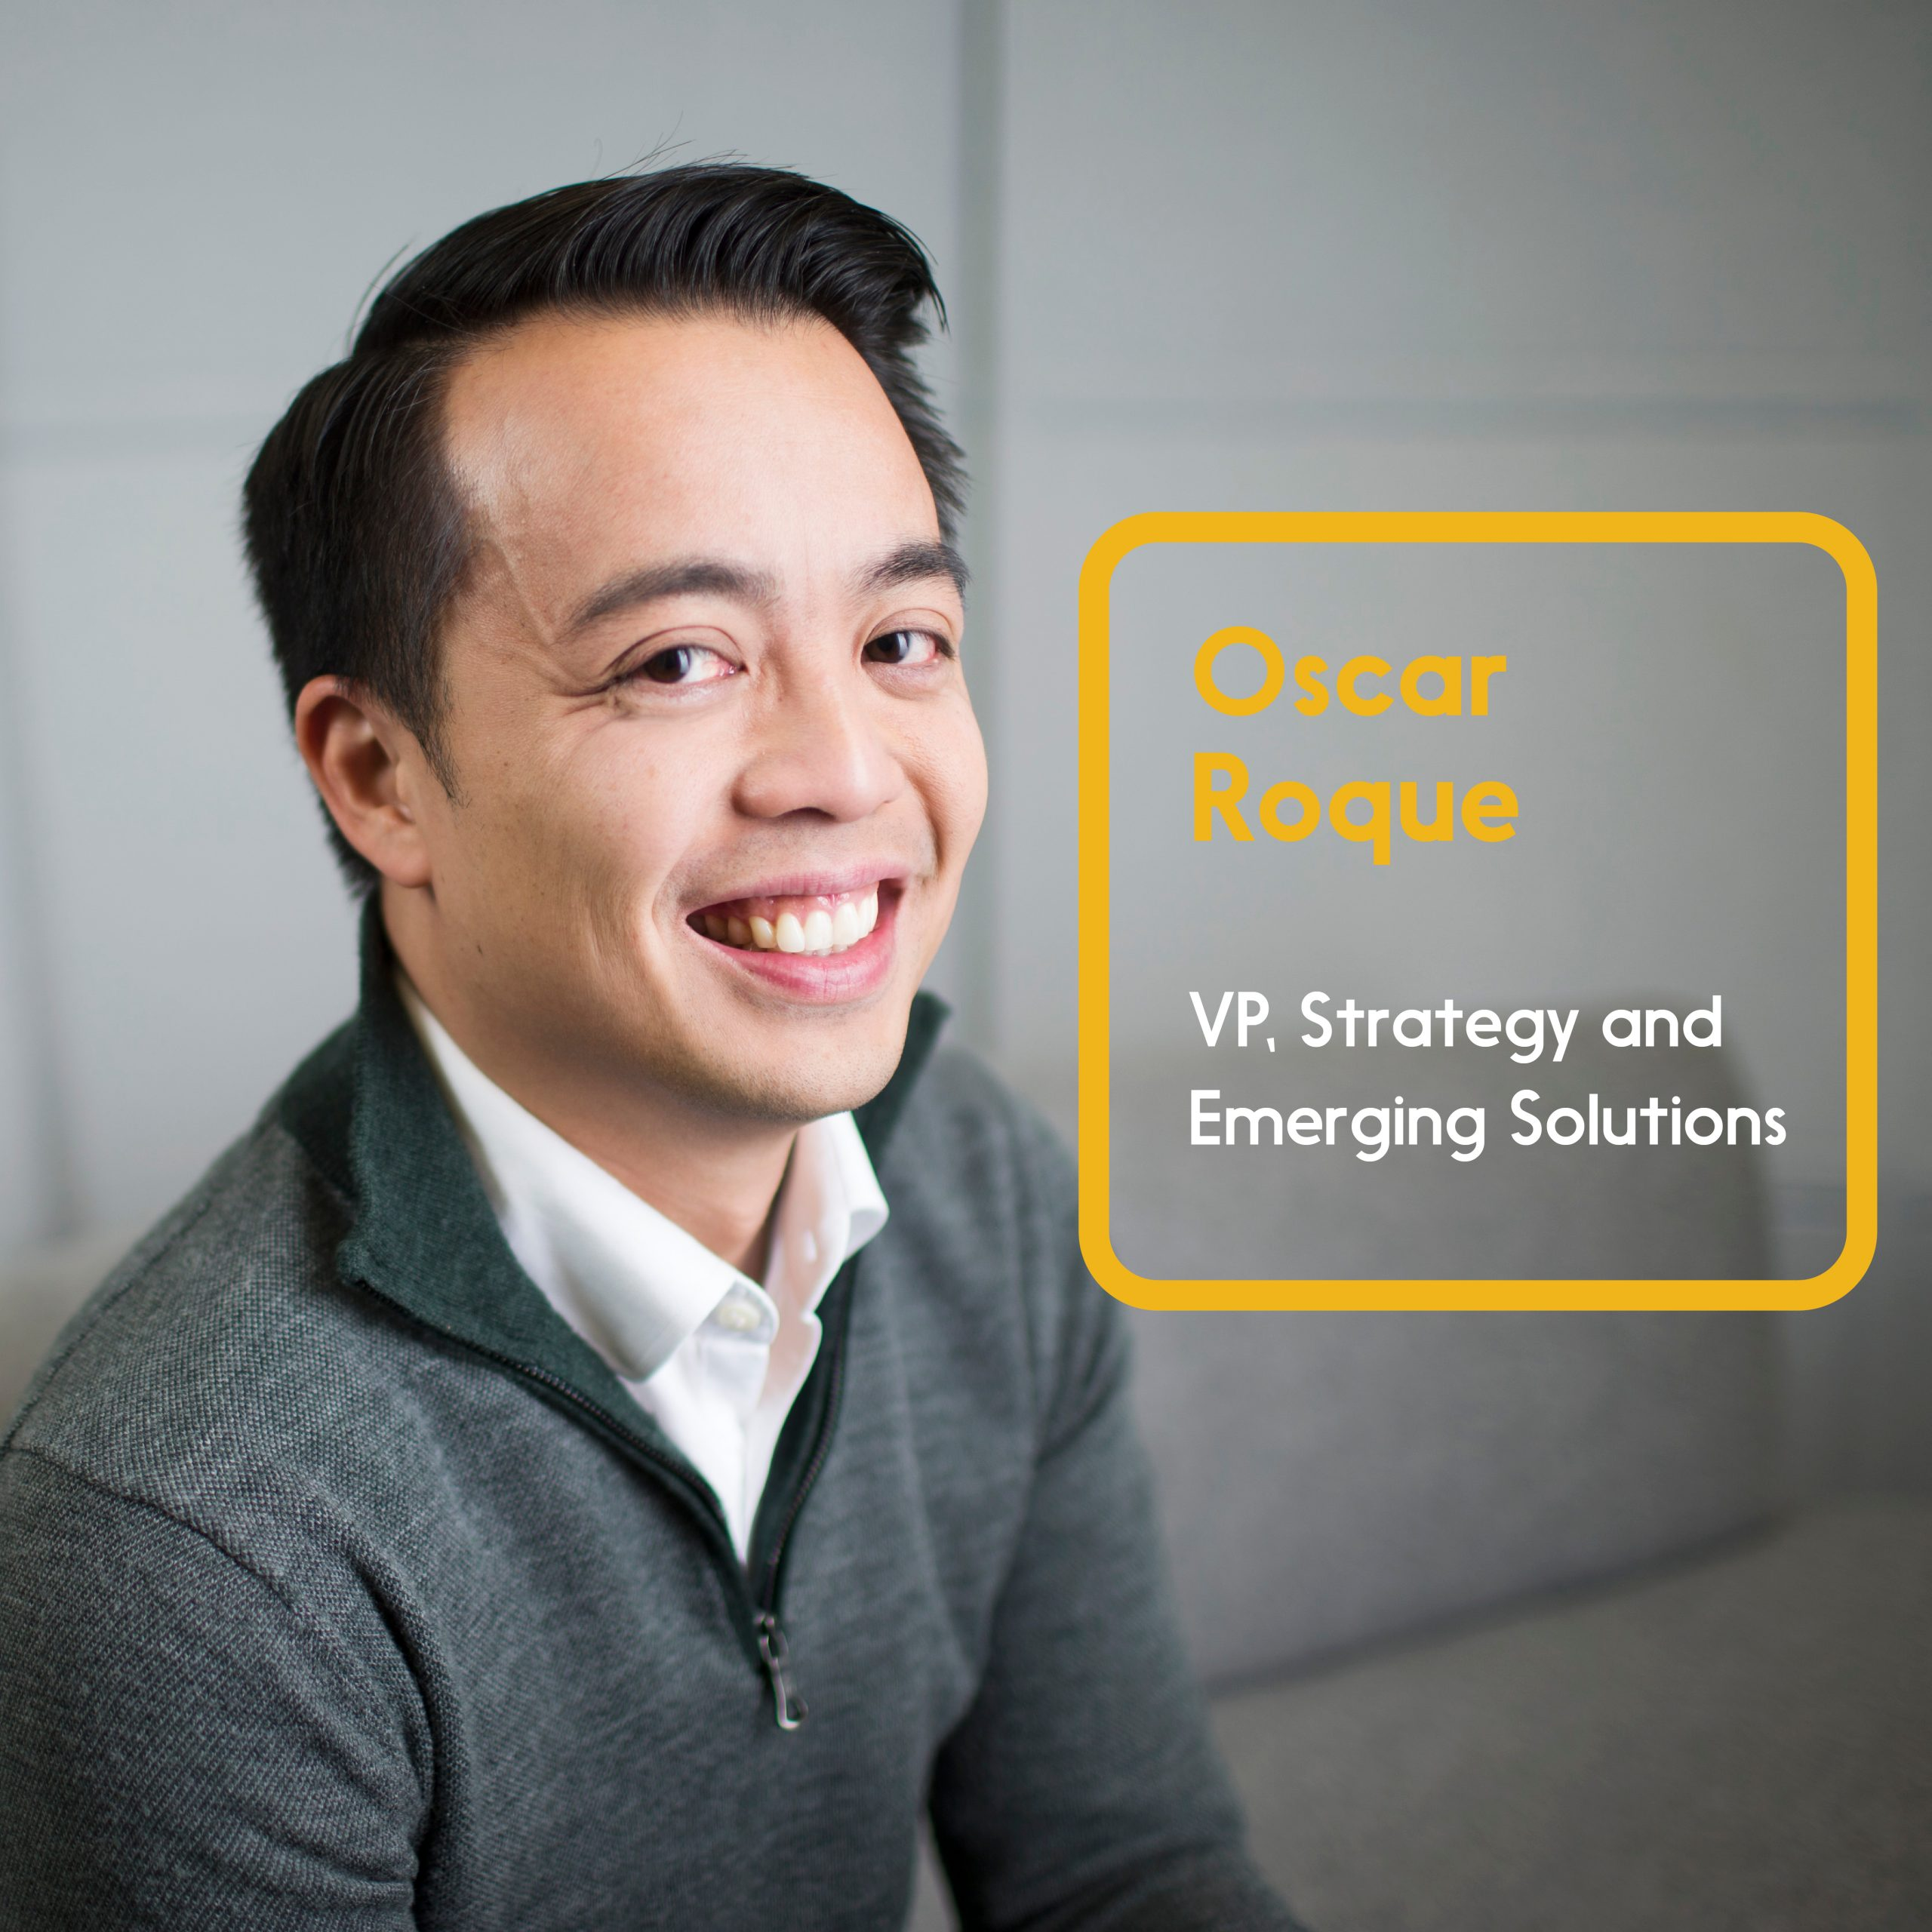 Oscar Roque, VP, Strategy and Emerging Solutions